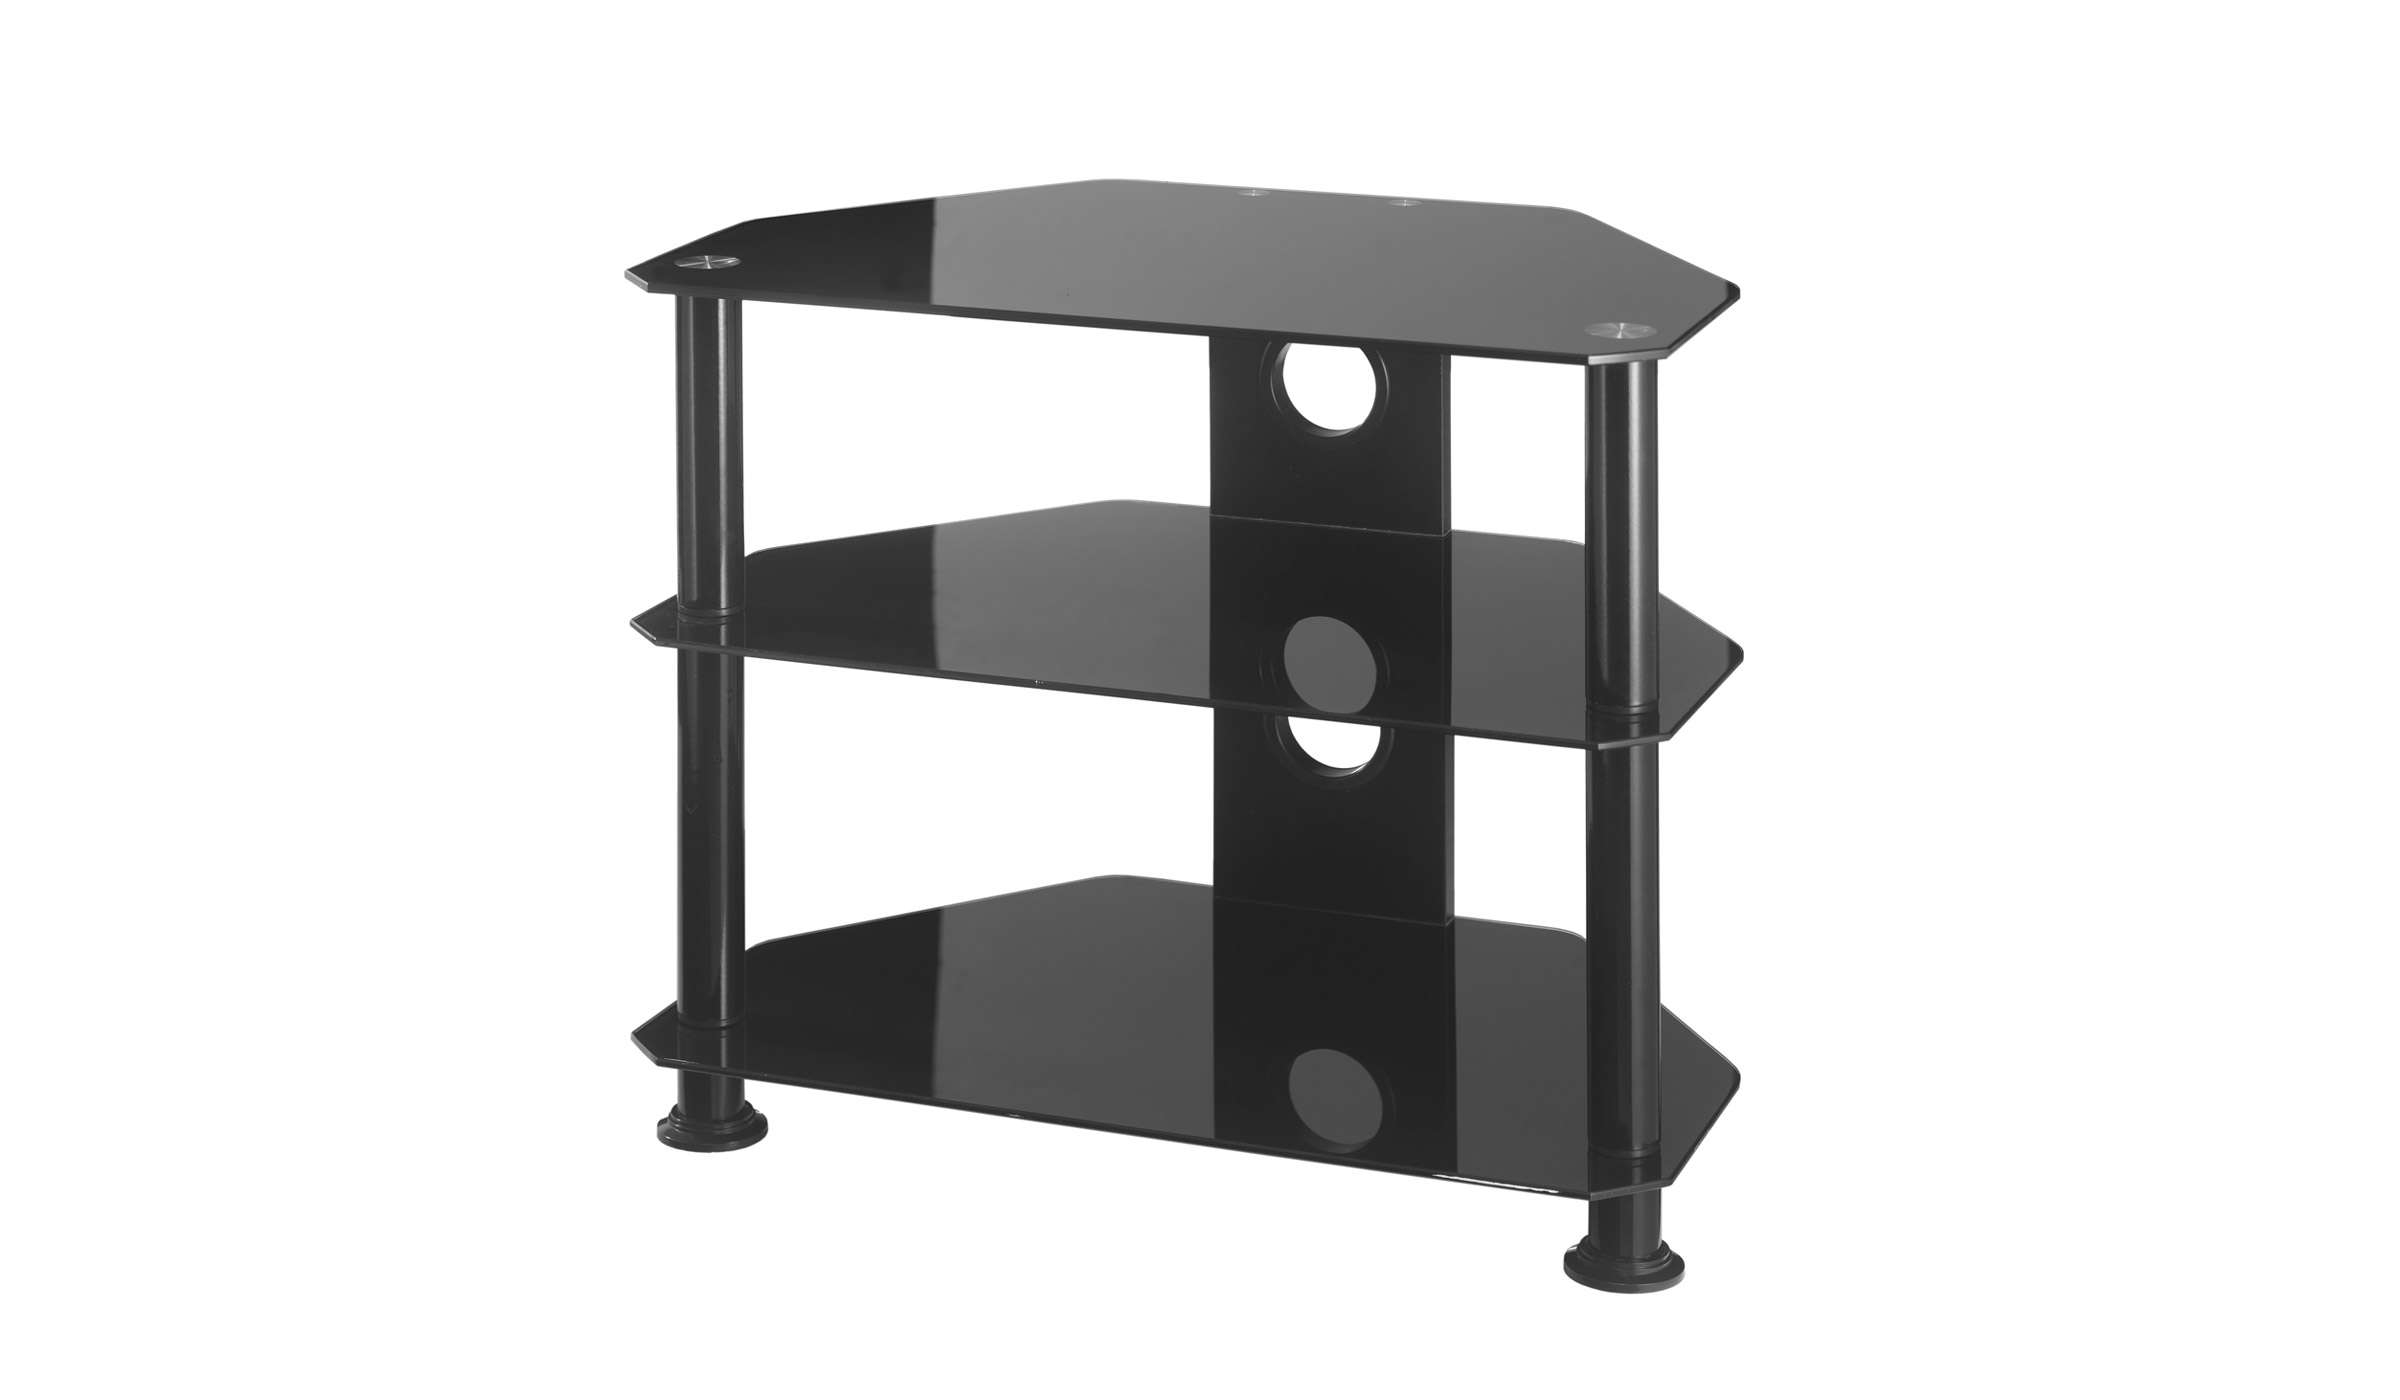 Small Glass Corner Tv Stand Up To 26 Inch Tv | Mmt Db600 Pertaining To Black Corner Tv Cabinets (View 18 of 20)